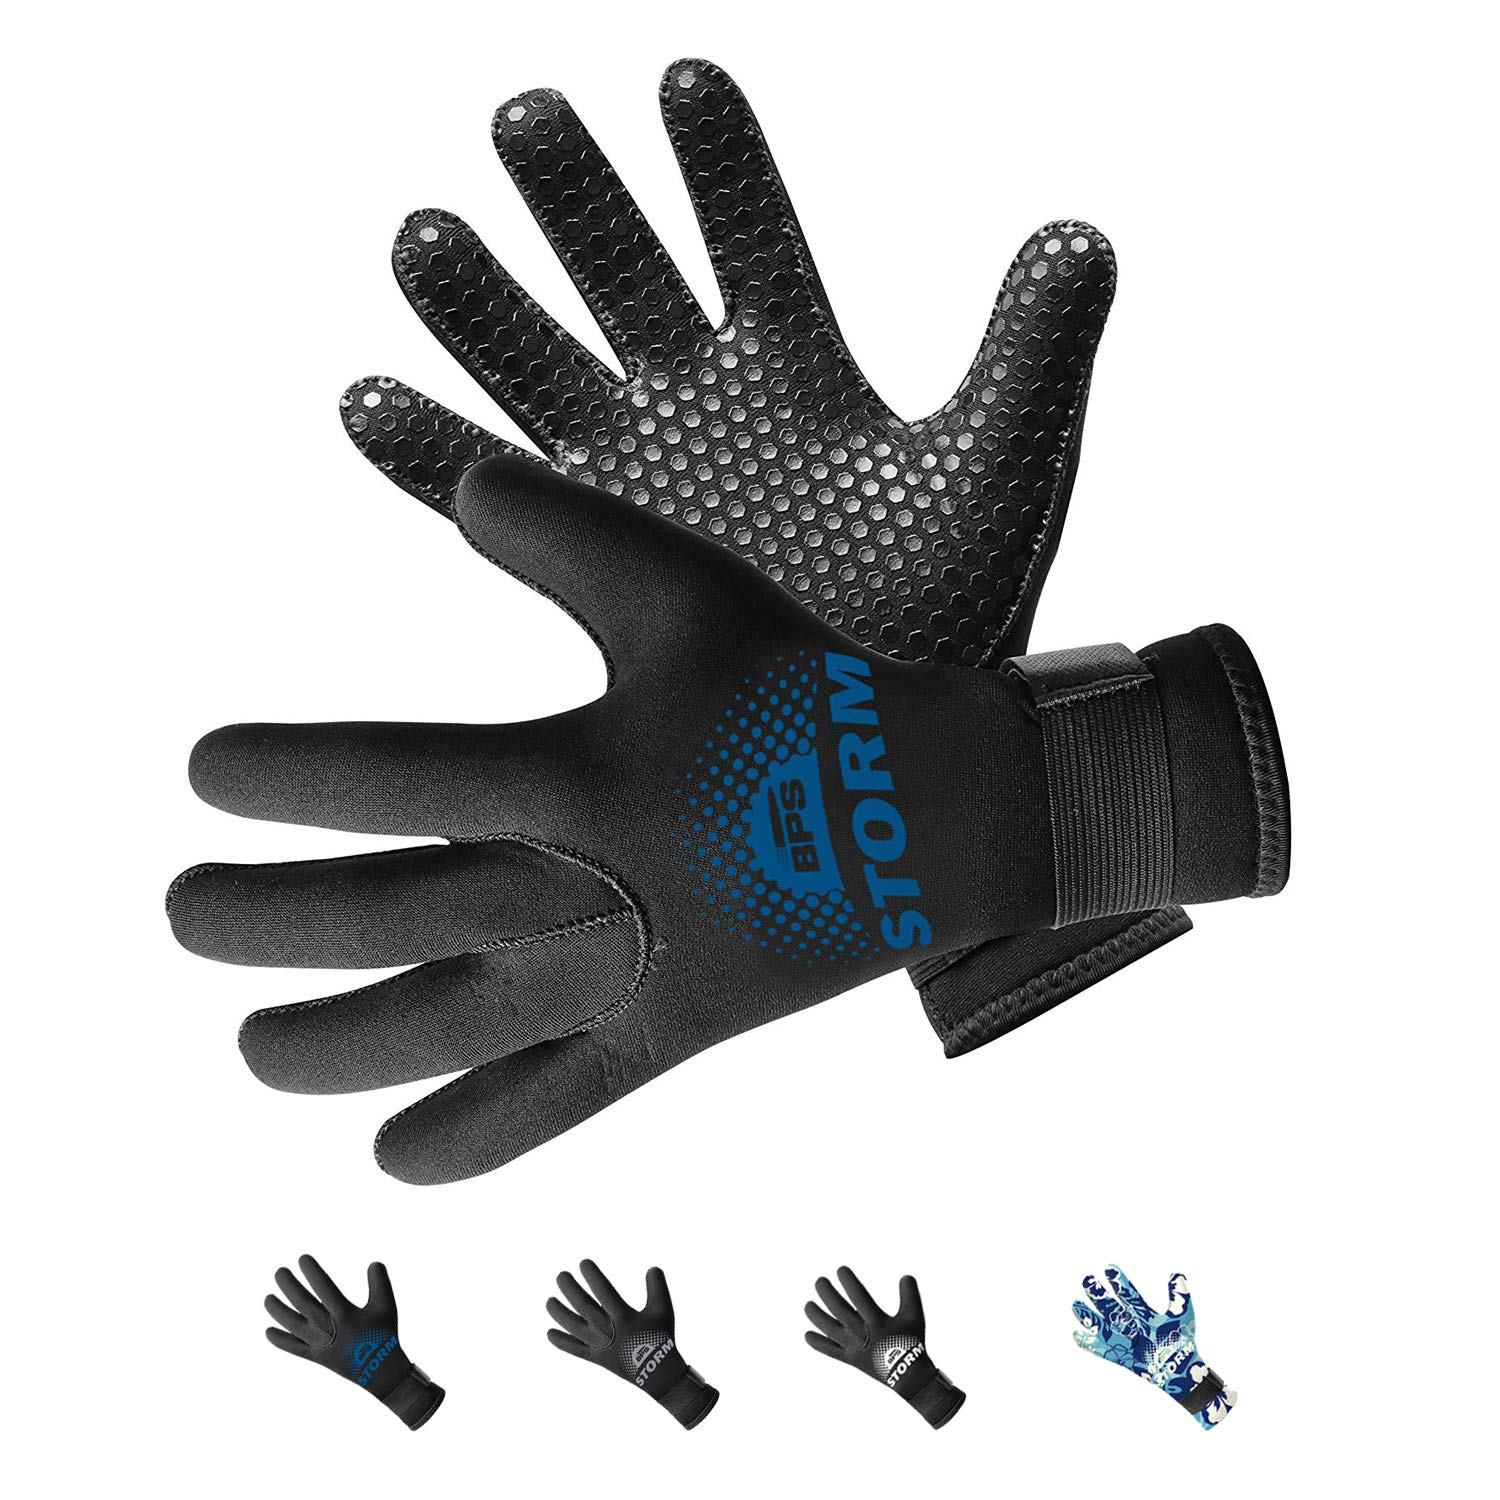 BPS Neoprene 5mm Scuba Diving Gloves with Non-Slip Grip Design for Fisherman, Surfers, Divers, Paddleboarder, Wakeboarder, Swimmer (Black/Snorkel Blue, XXL) by BPS